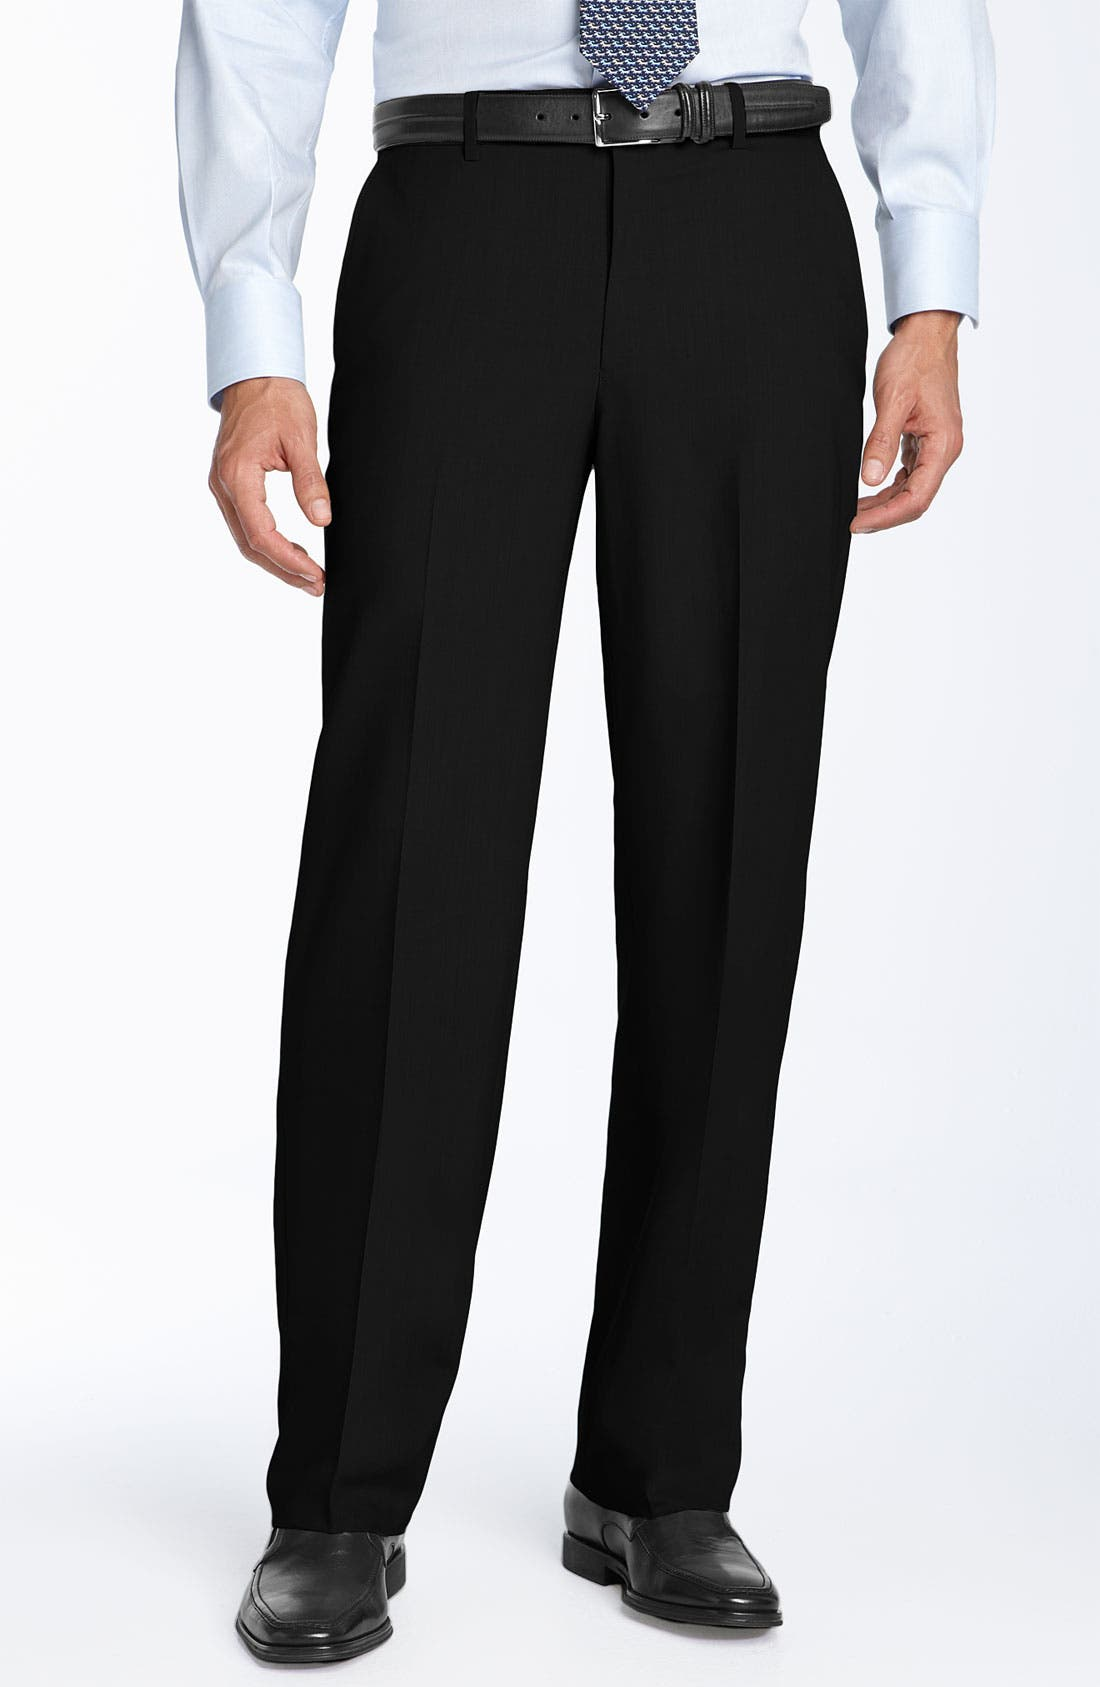 Main Image - Ballin Stain Resistant Flat Front Trousers